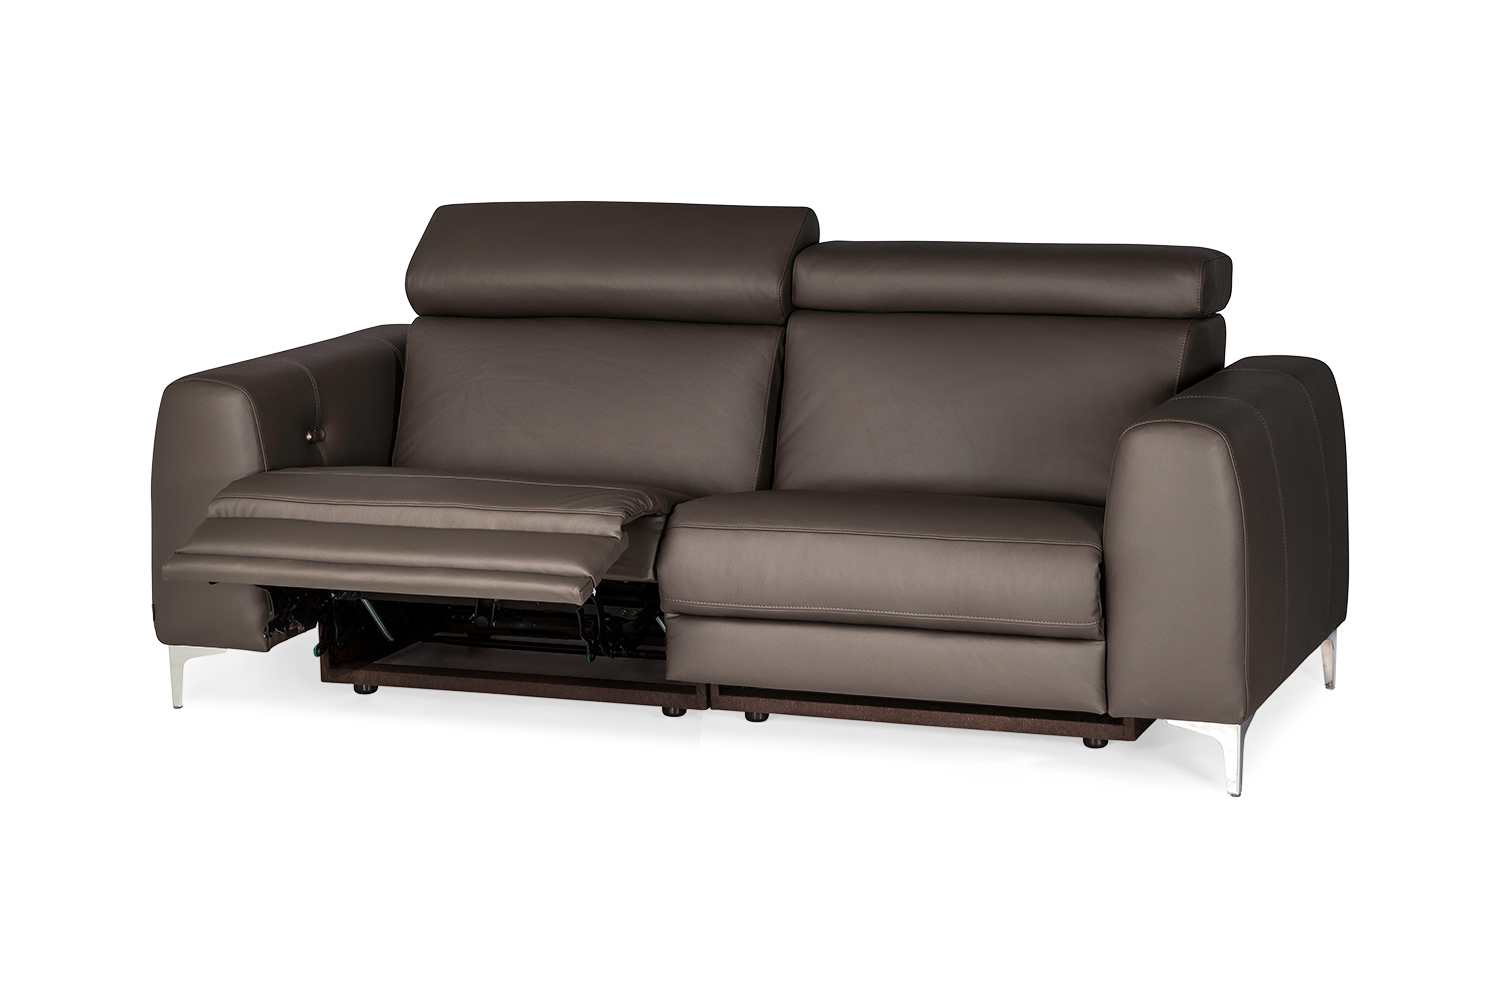 In picture Gent 3 LC with 2 recliners, leather: Labrador 3293, Leg 53 Stainless Steel.